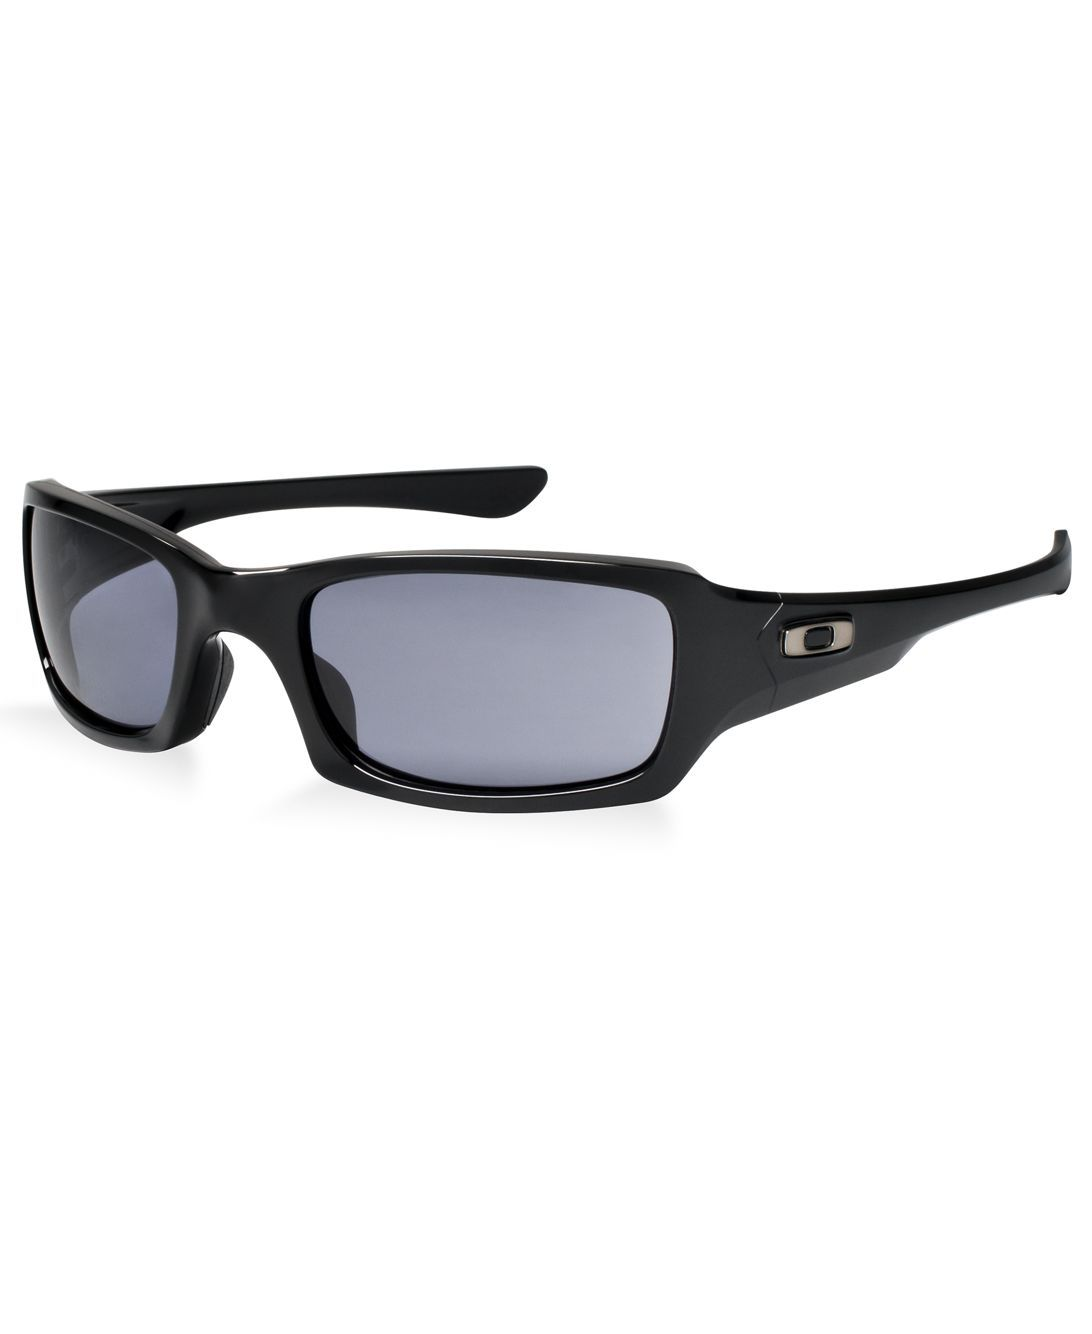 Oakley Sunglasses, OO9238 Fives Squared | Products | Pinterest